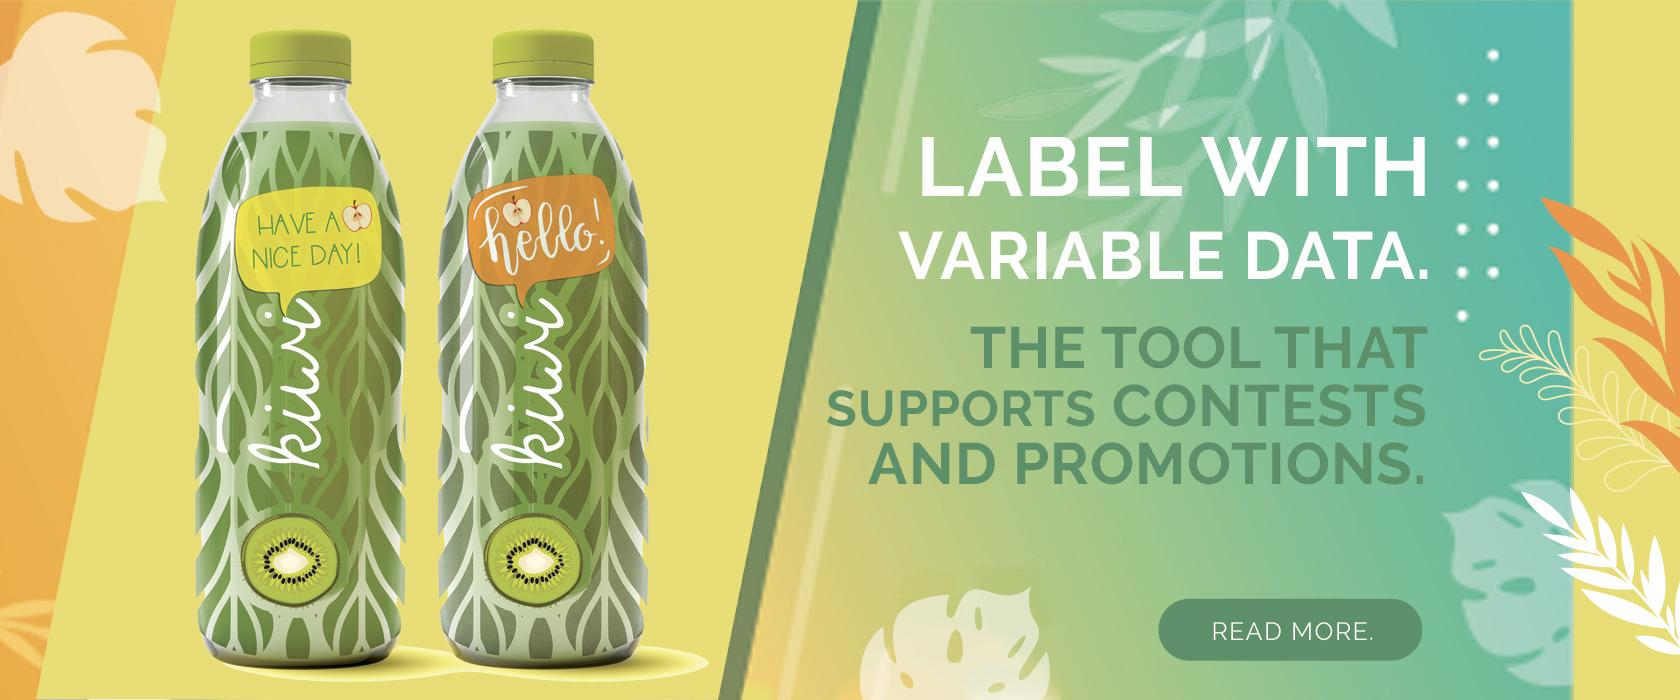 LABEL WITH VARIABLE DATA CONTESTS AND PROMOTIONS